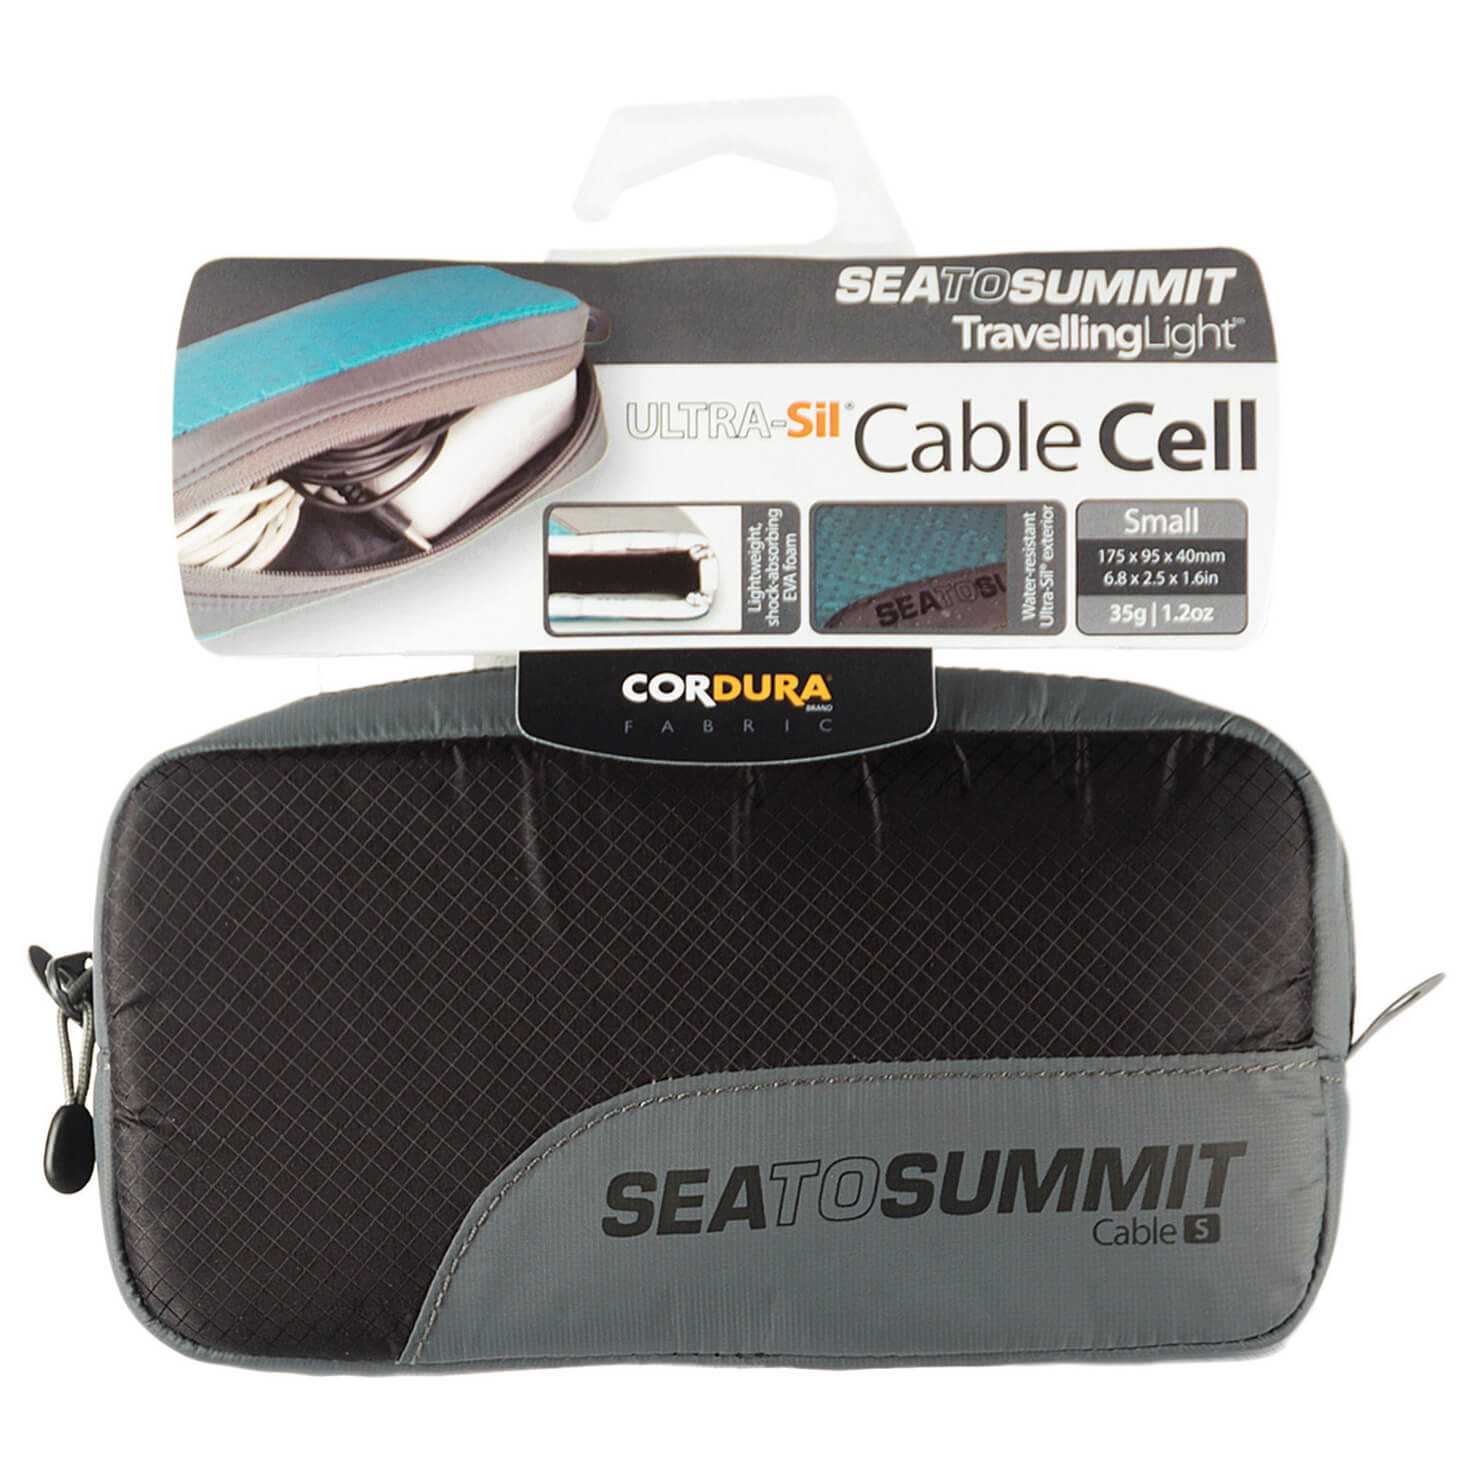 Sea to Summit Cable Cell - Kabeltasche | Buy online | Alpinetrek.co.uk